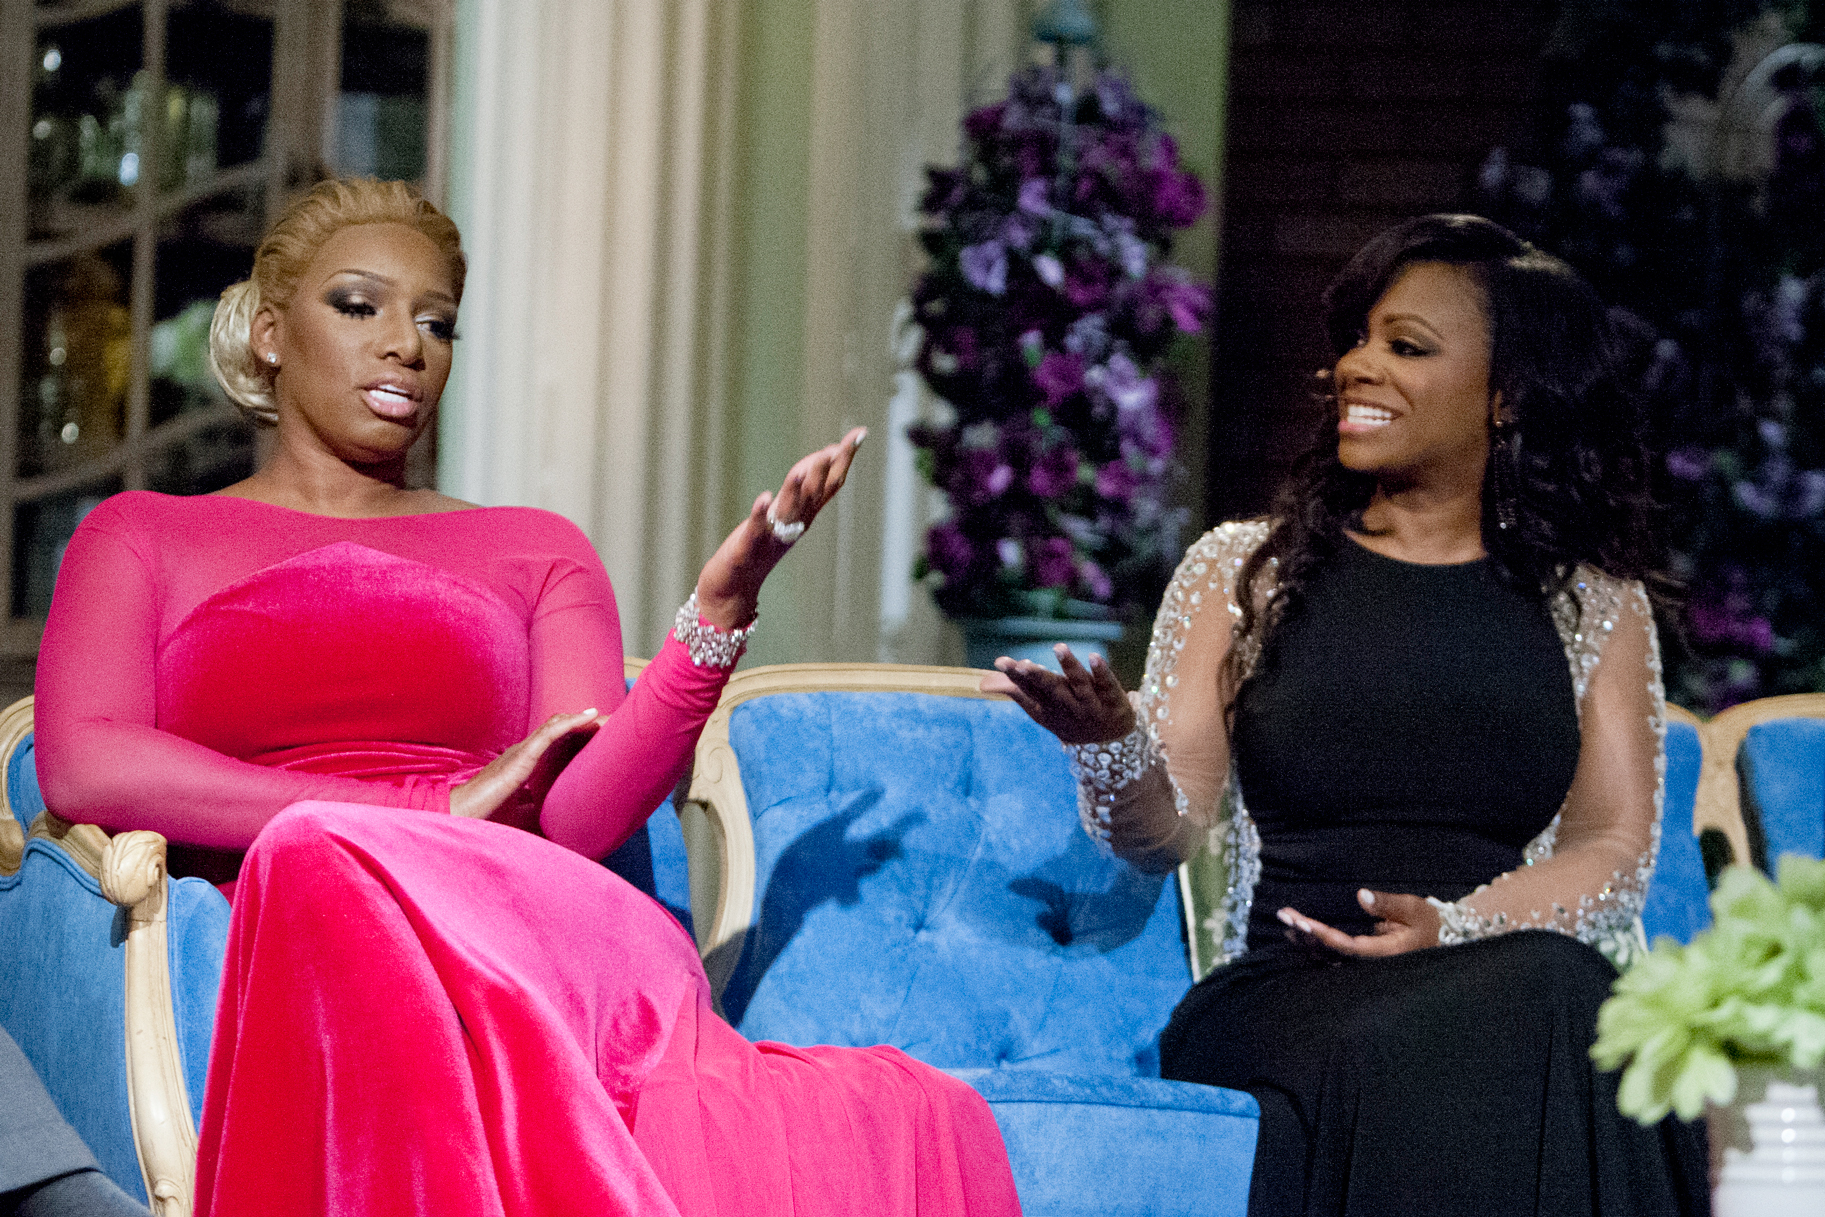 kandi-reveals-run-in-she-had-with-nene-leakes-who-allegedly-ignored-her